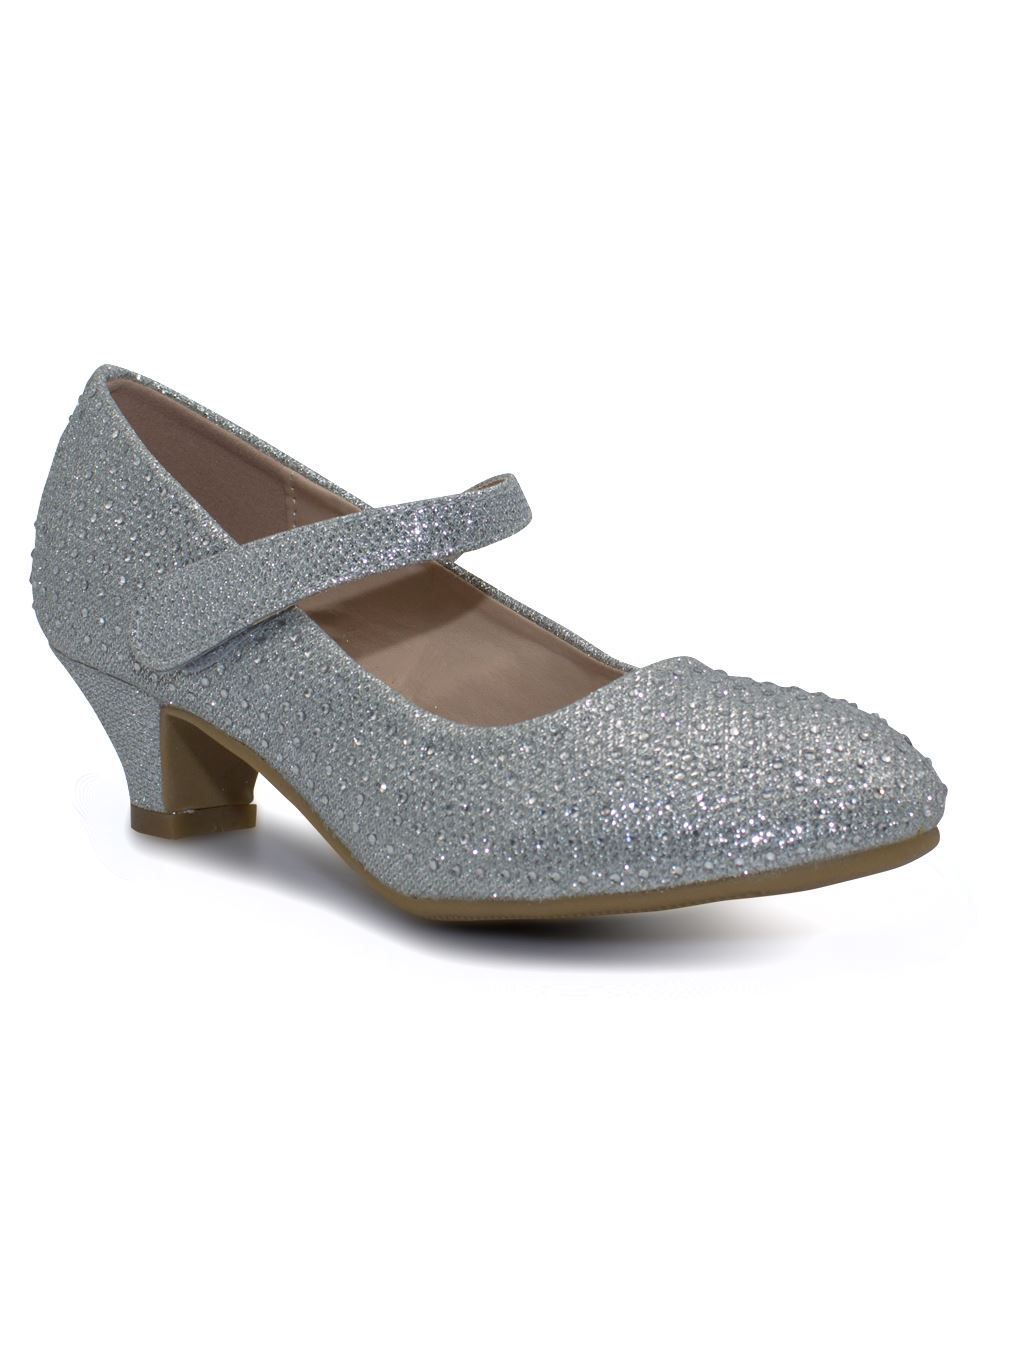 Girls-Party-Bridesmaid-Glitter-Diamante-Wedding-Block-Low-Heel-Shoes miniatura 9